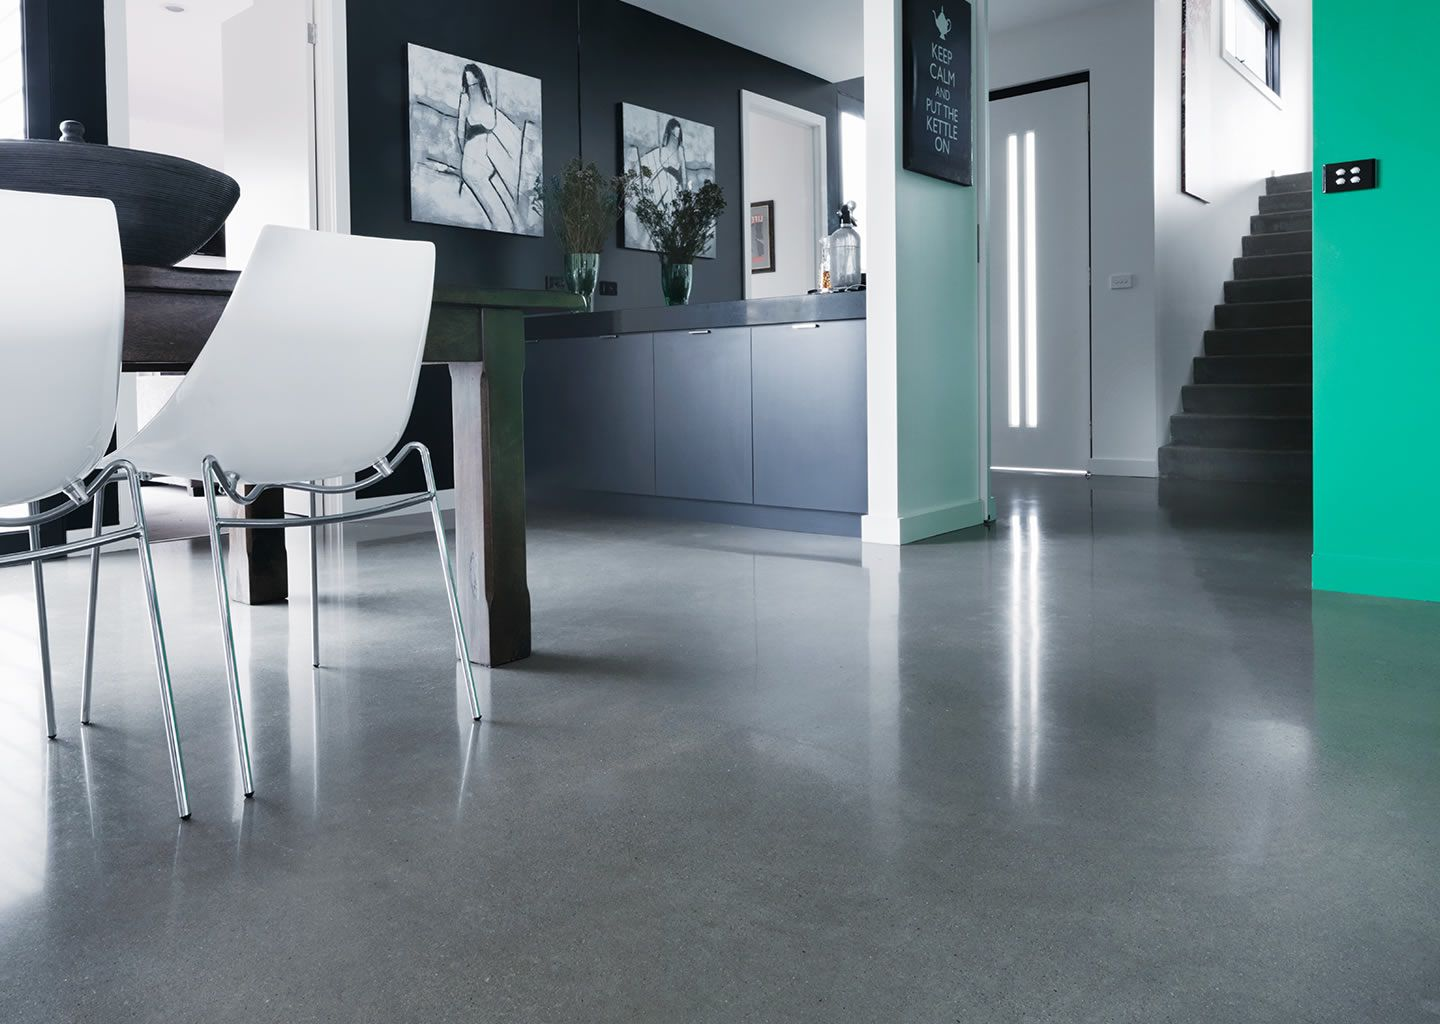 Amazing Polished Concrete Floors   Polishing Concrete With Husqvarna HiPERFLOOR®